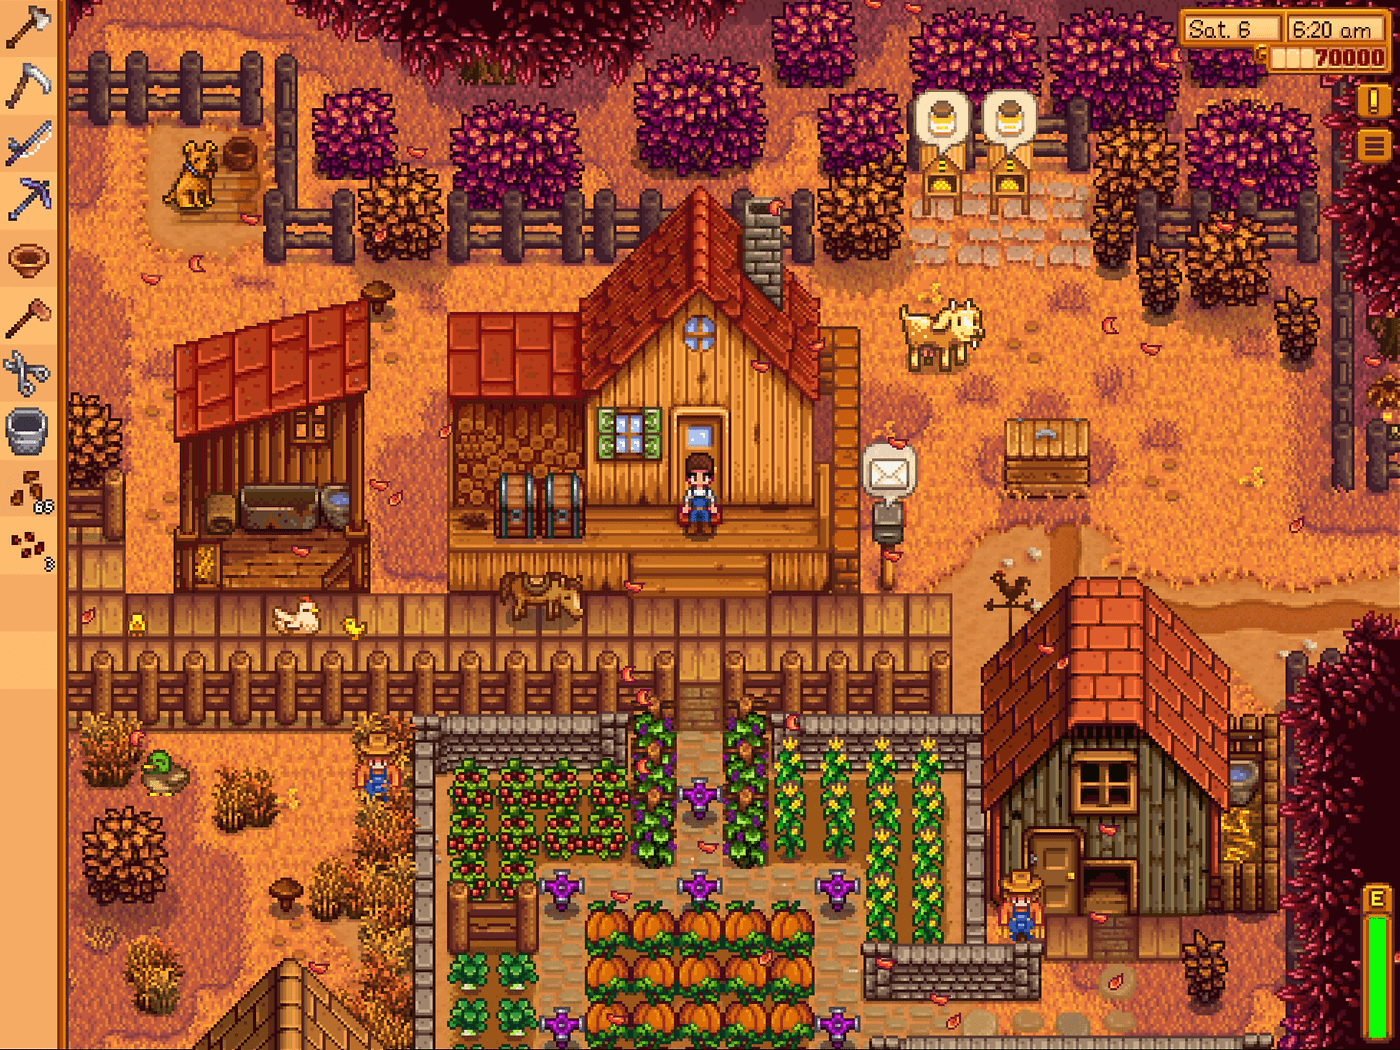 Stardew Valley Wallpaper 18 1400x1050 Pixel Wallpaperpass